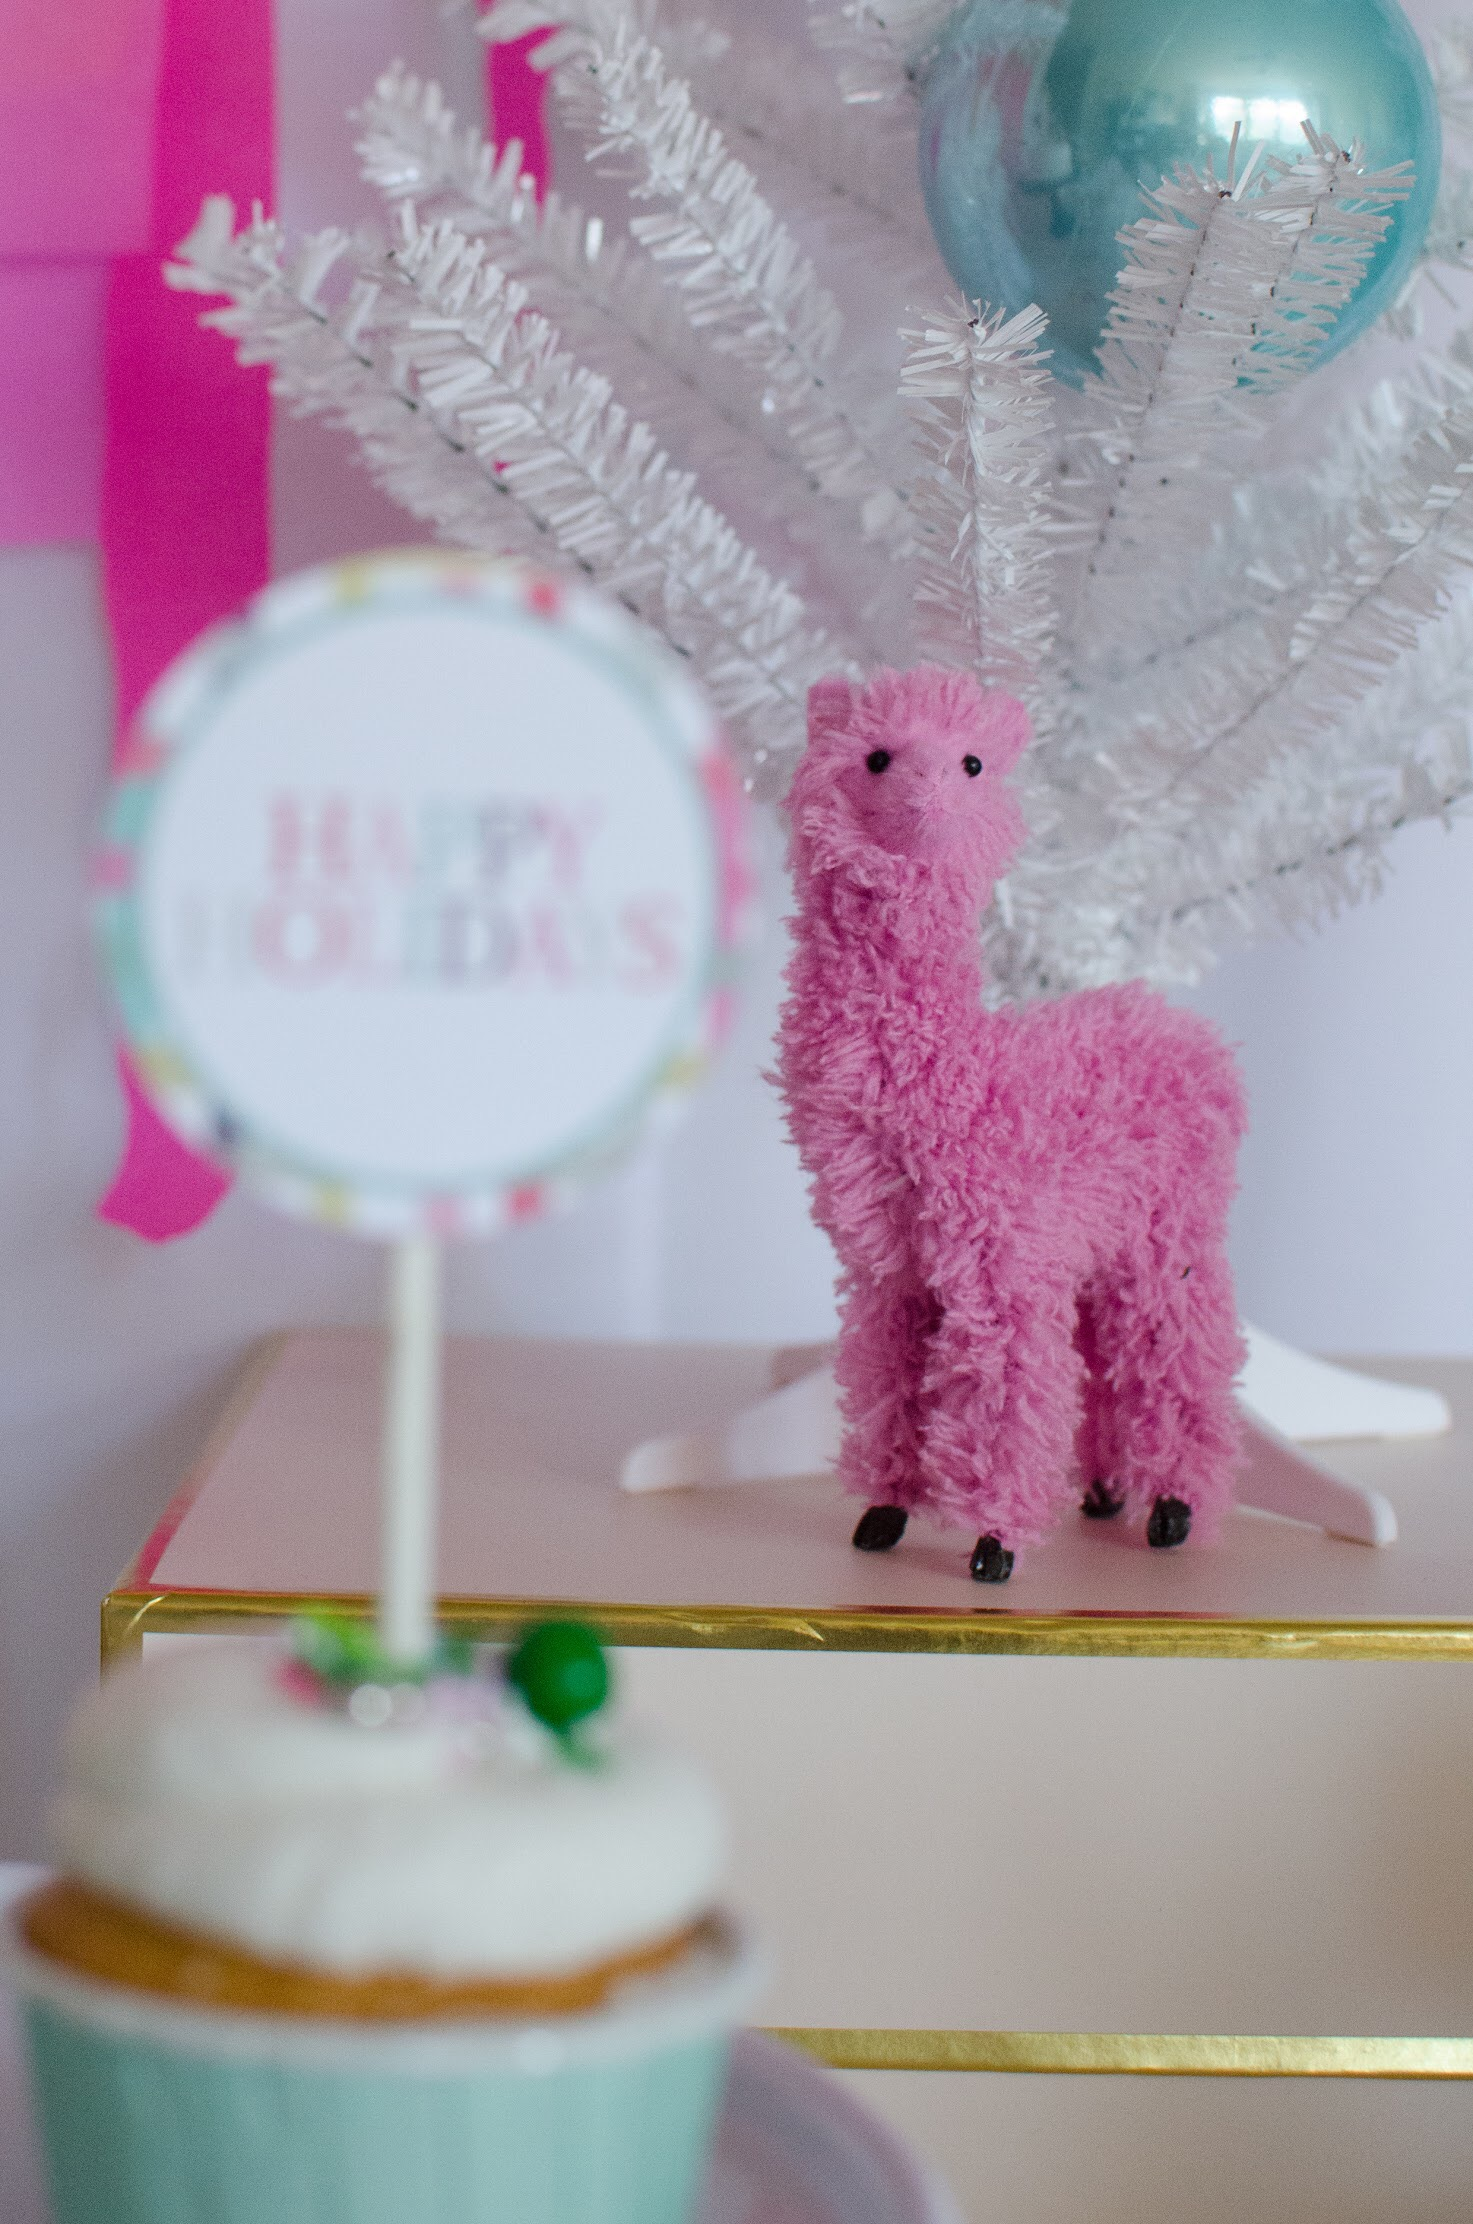 Love this sweet stuffed llama as party decor for the fa la la la llama holiday party from Mint Event Design. See more from this llama Christmas party at www.minteventdesign.com and download your free printables #holidayparty #partyideas #christmasparty #holidaypartyideas #llamaparty #llamalove